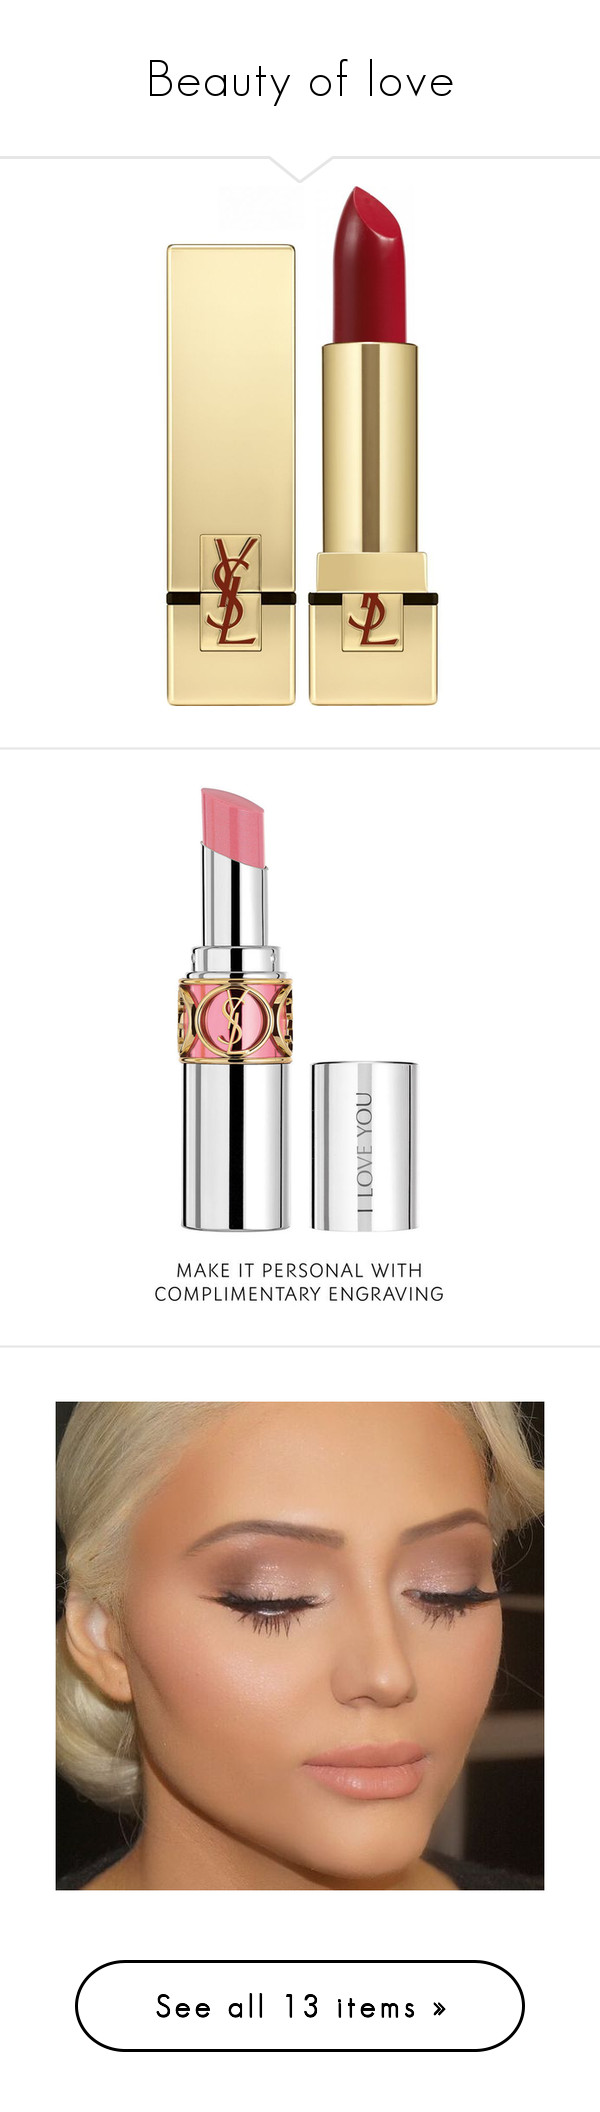 """""""Beauty of love"""" by addfashion87 ❤ liked on Polyvore featuring accesories, beauty products, makeup, lip makeup, lipstick, beauty, lips, accessories, filler and yves saint laurent lipstick"""